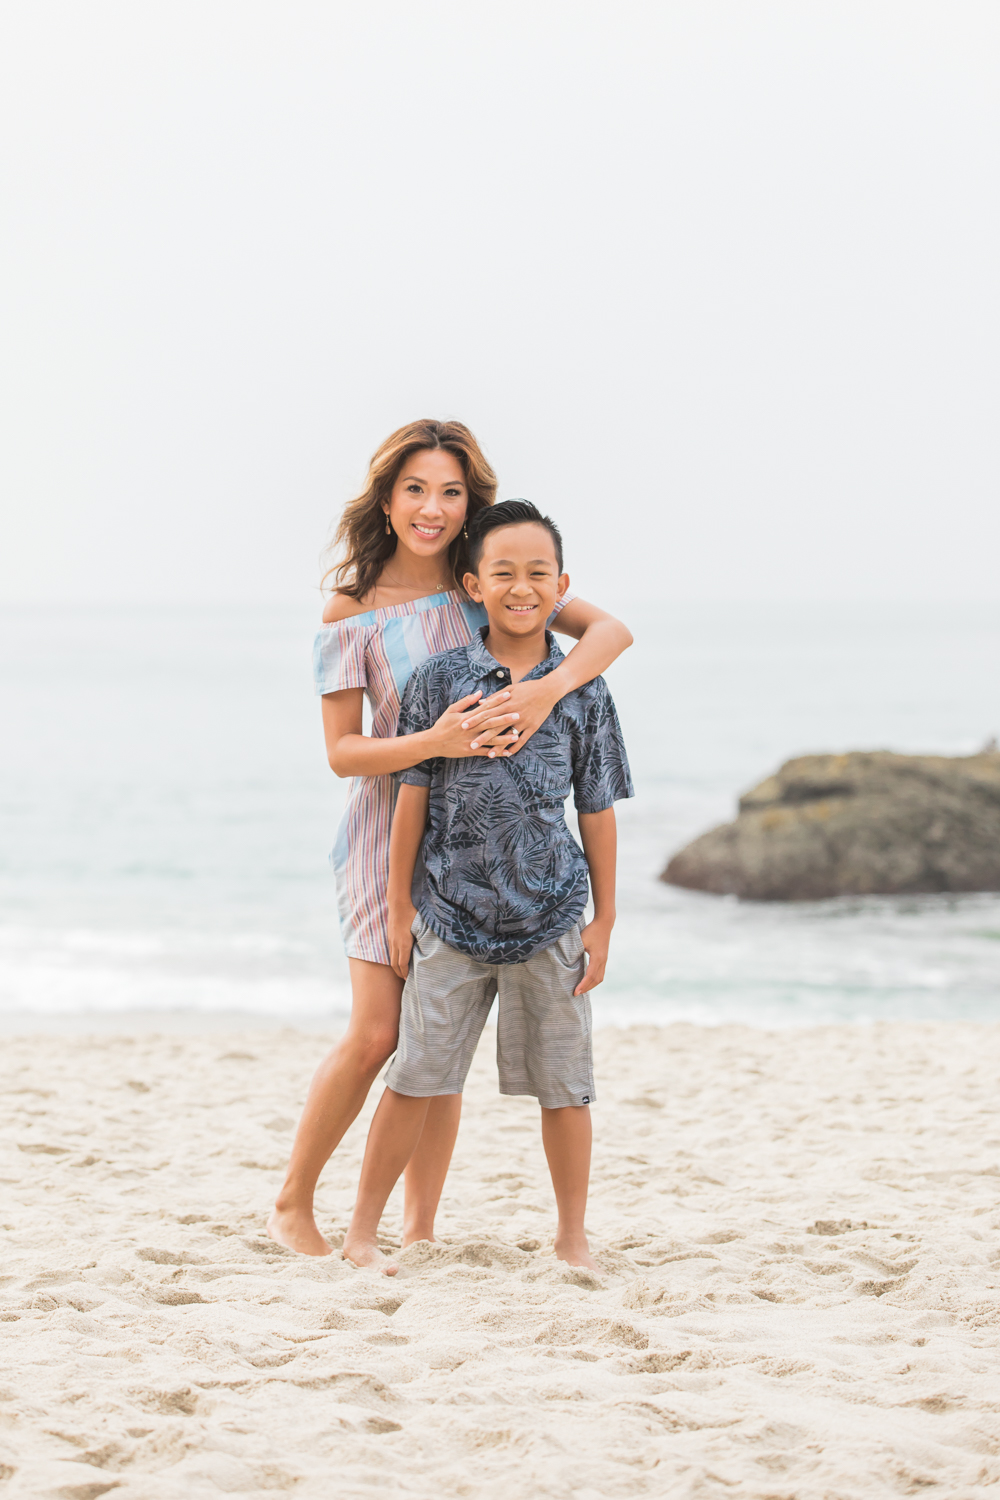 Cosico Family Session | Family Photographer | Laguna Beach, California